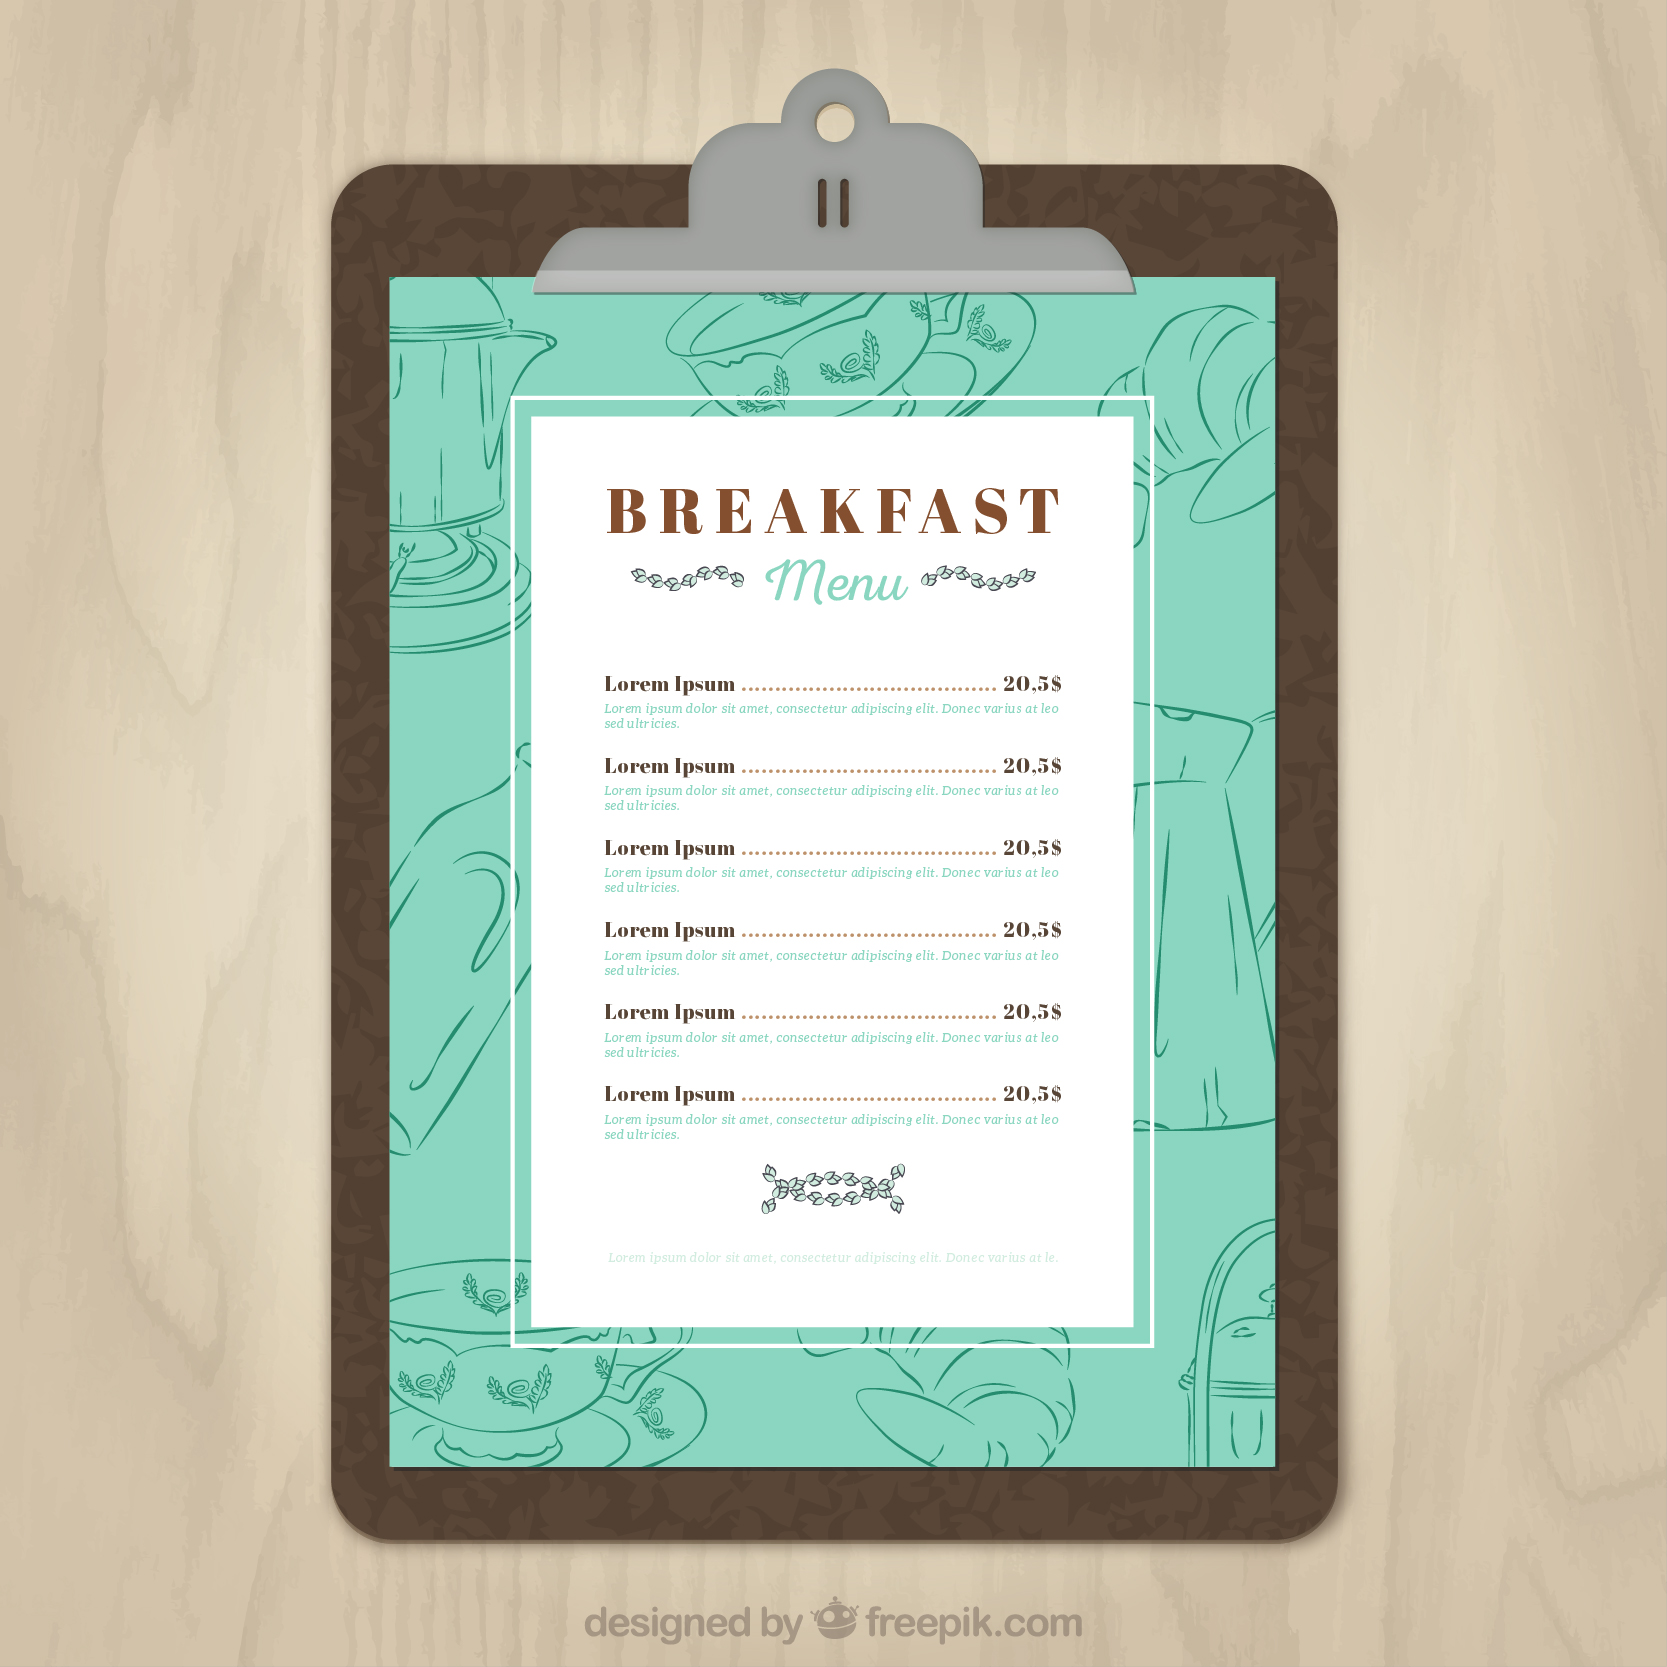 cafe menu design template free download - 11 free sample breakfast menu templates printable samples